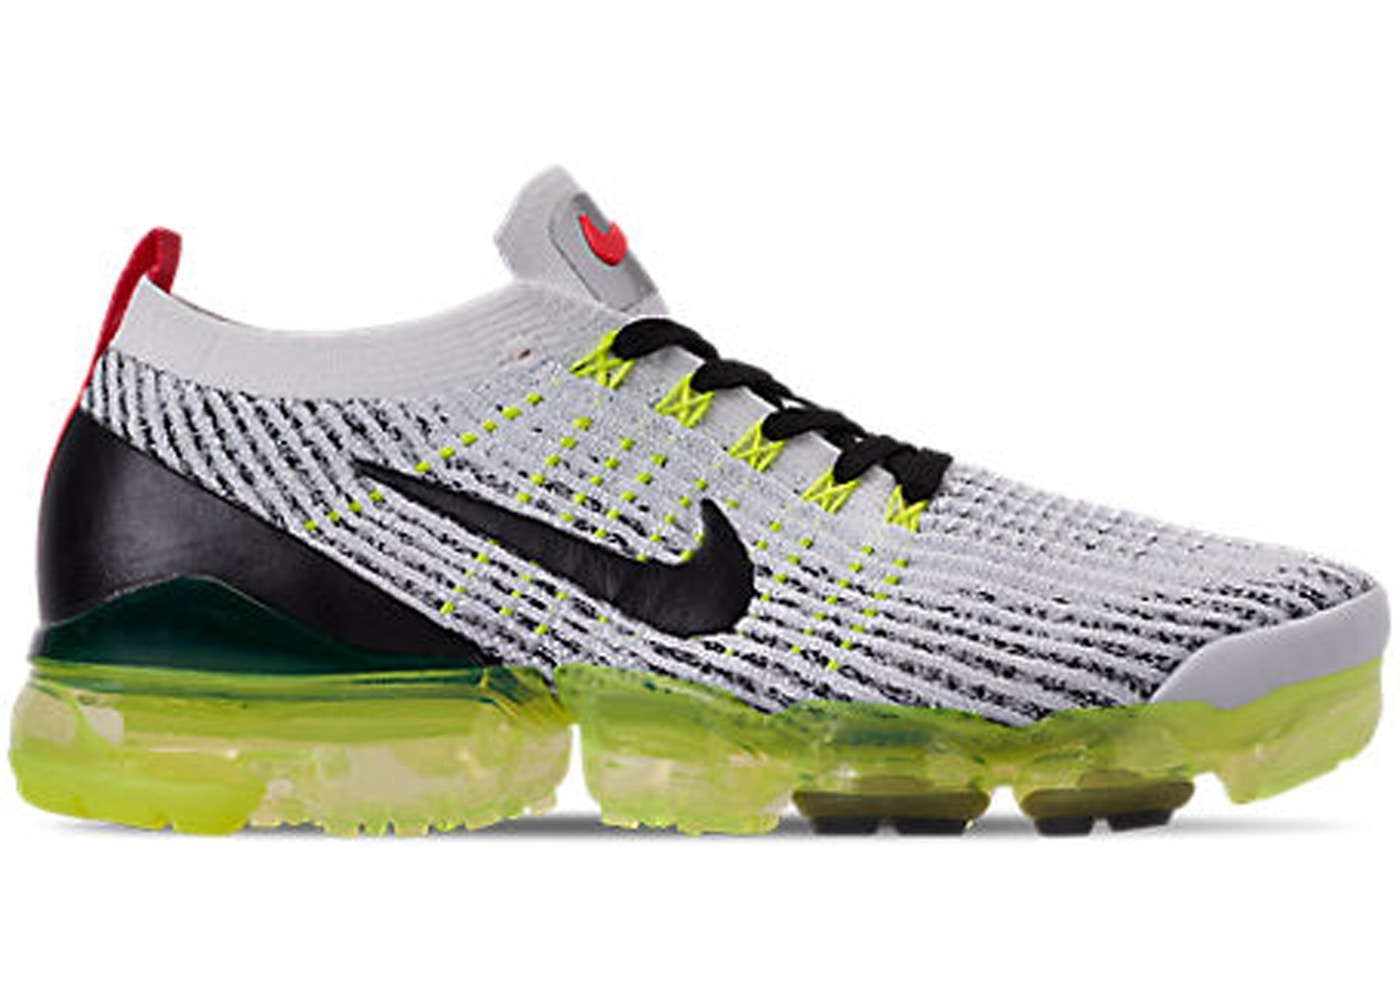 brand new 098f5 28eaf Air VaporMax Flyknit 3 White Black Volt Bright Crimson